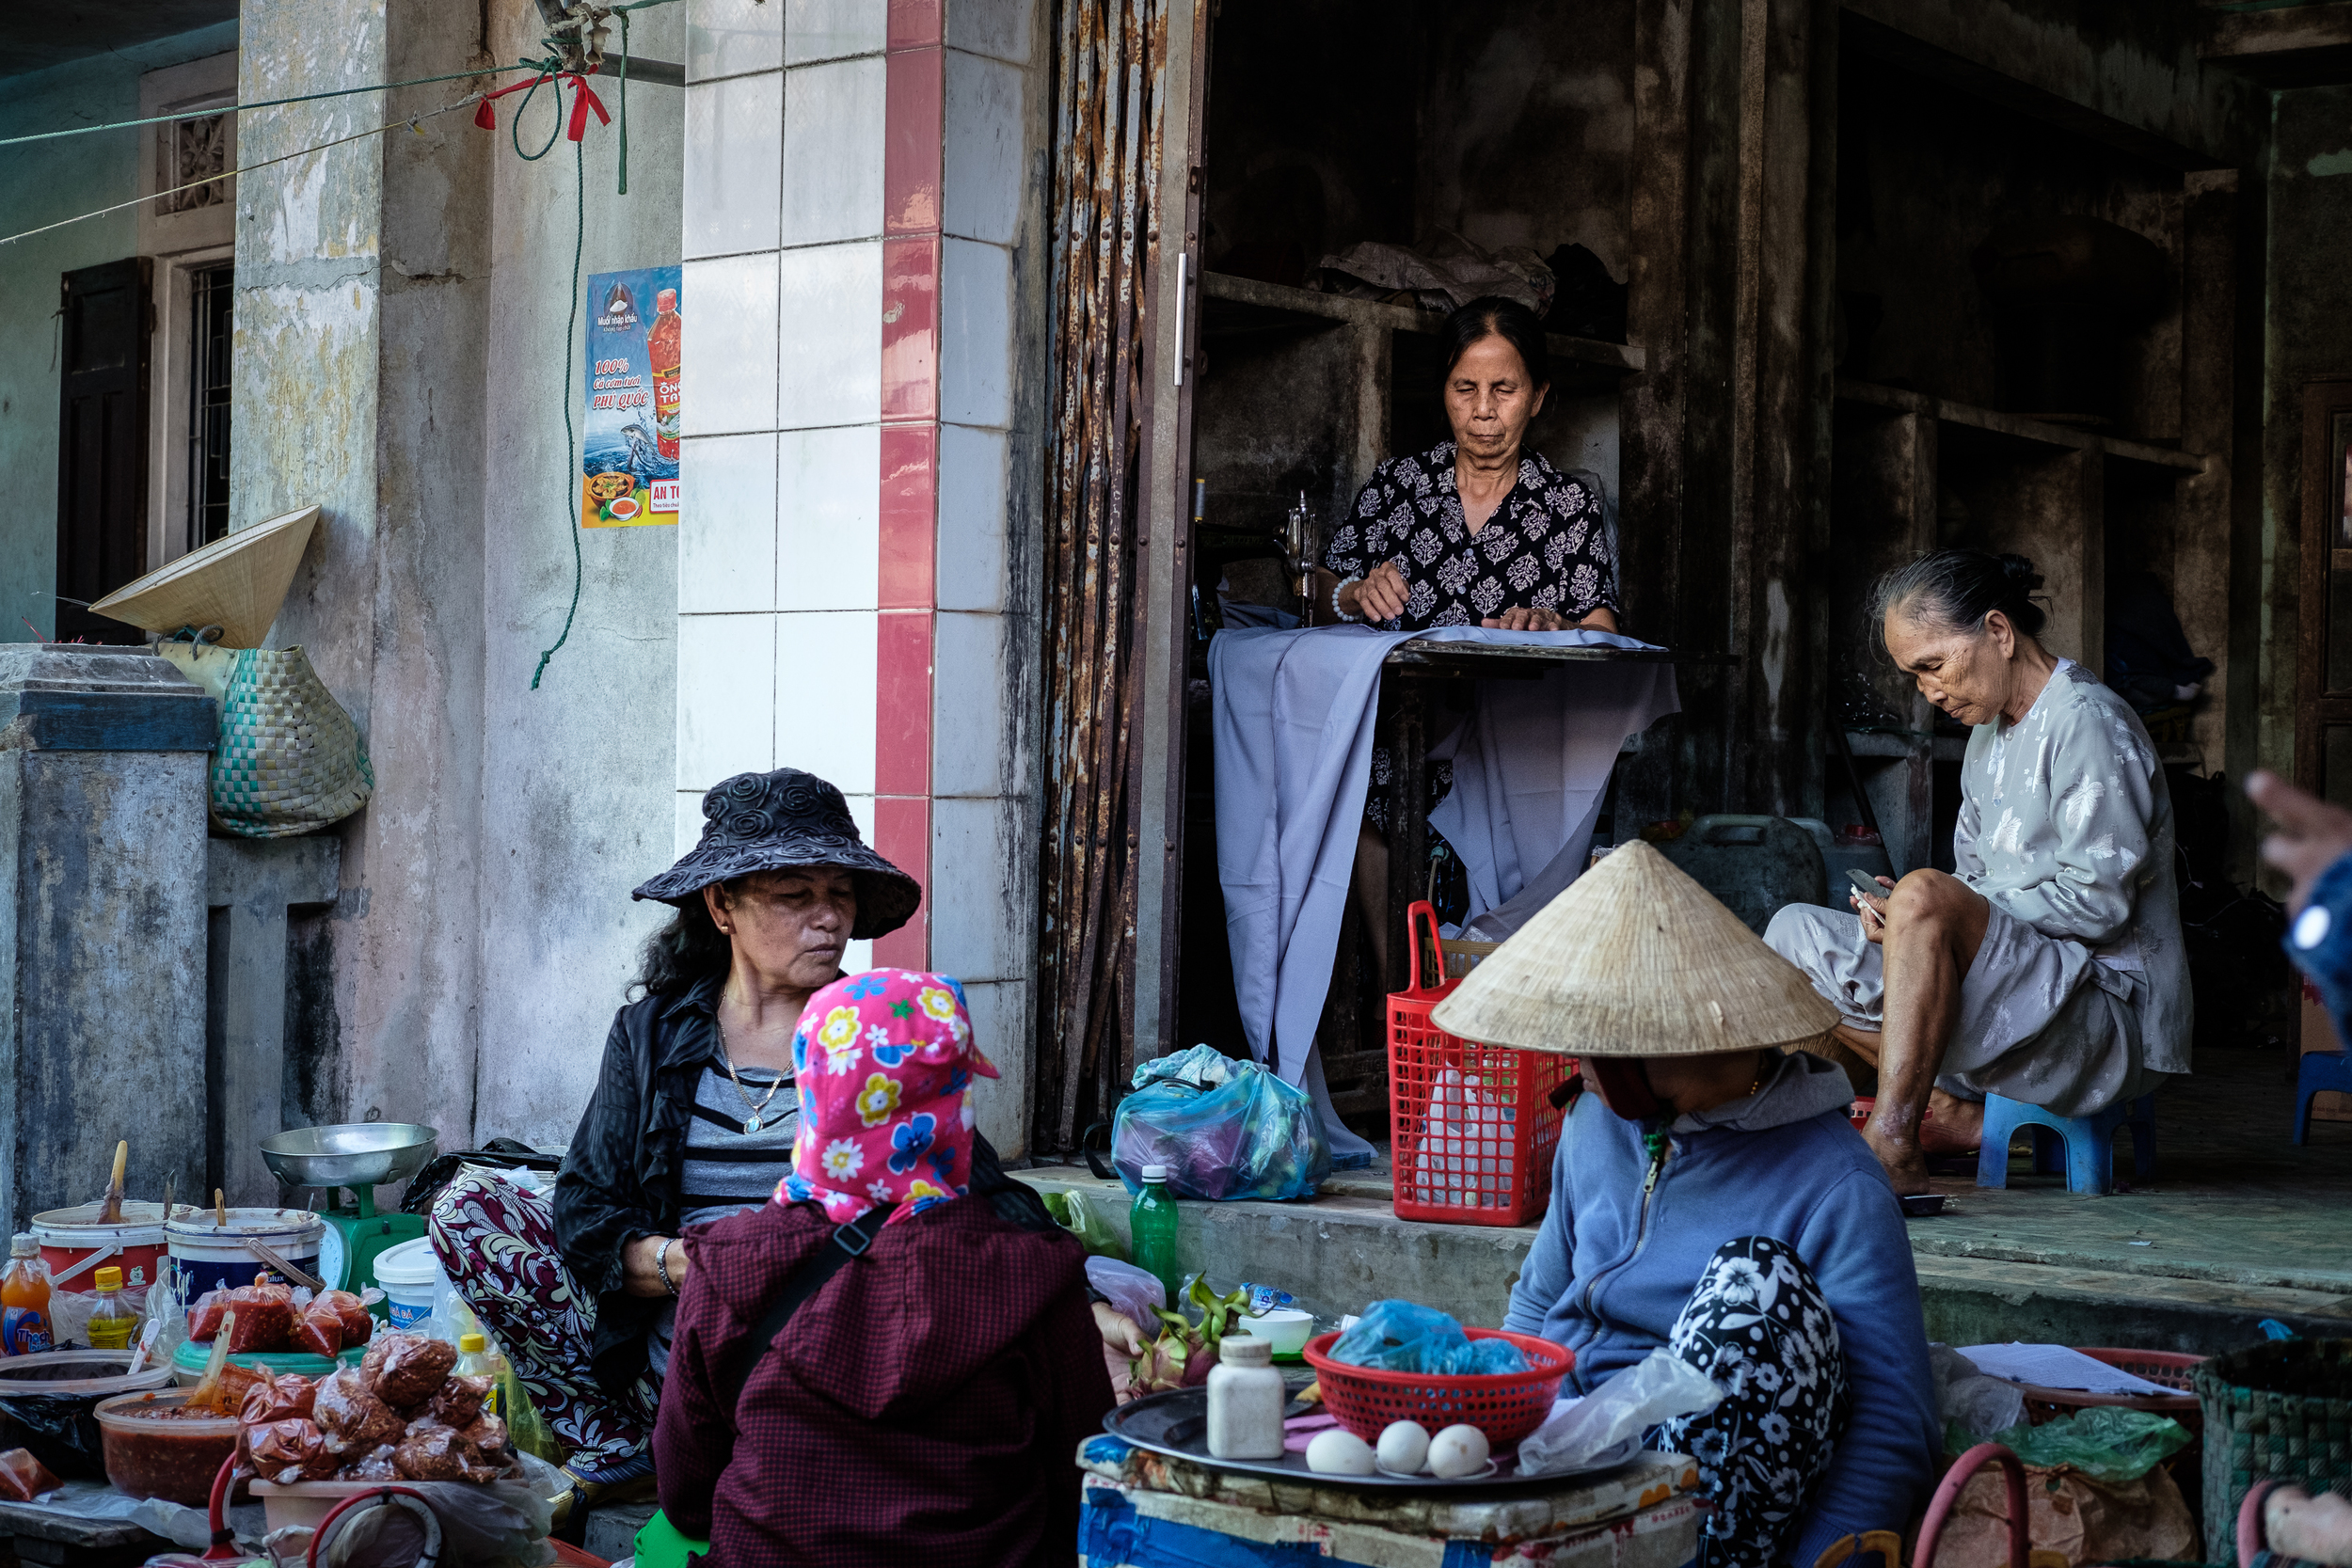 The markets are where most people get their clothes and food, rather than in shops.